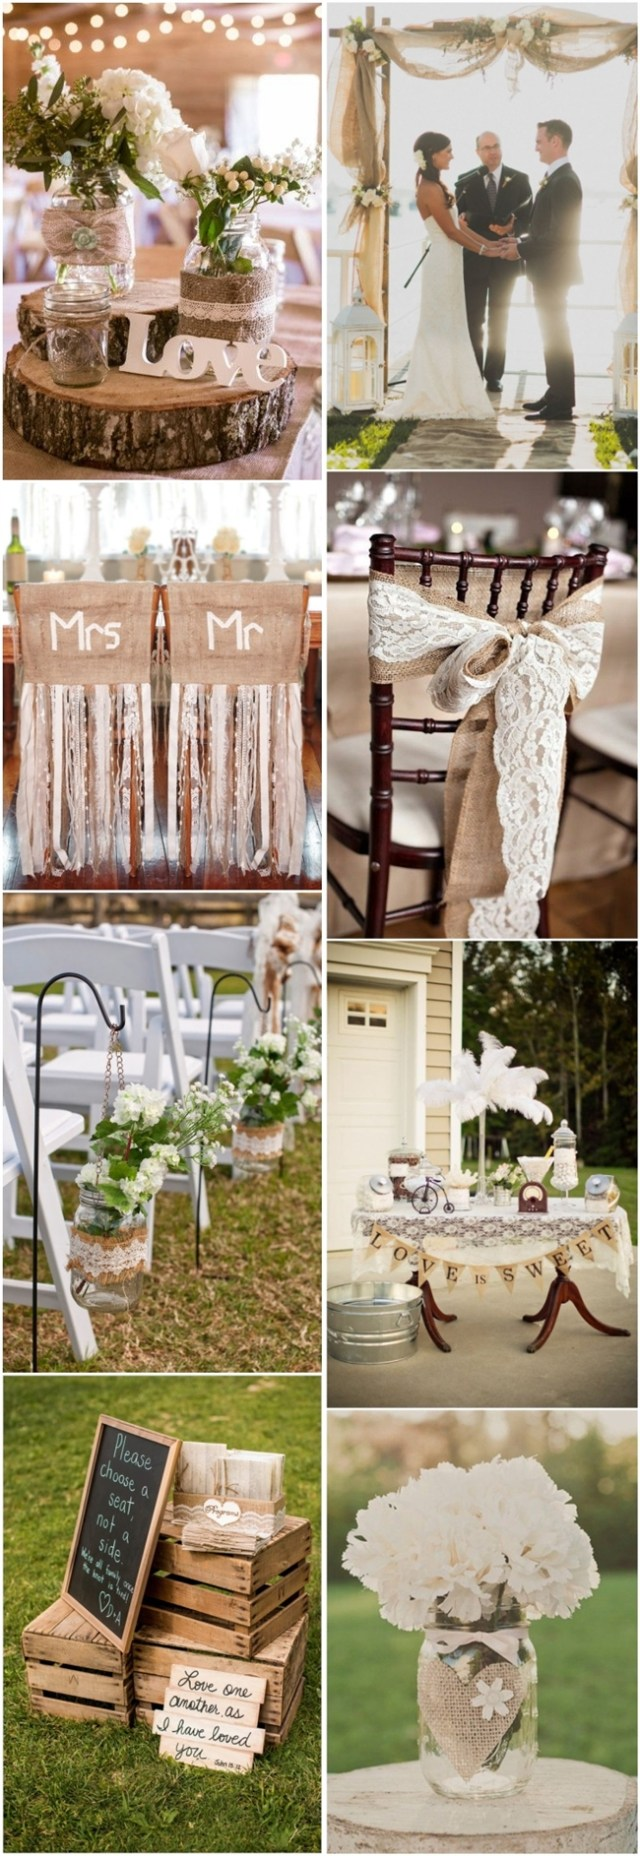 Country Chic Wedding Decor 45 Chic Rustic Burlap Lace Wedding Ideas And Inspiration Tulle